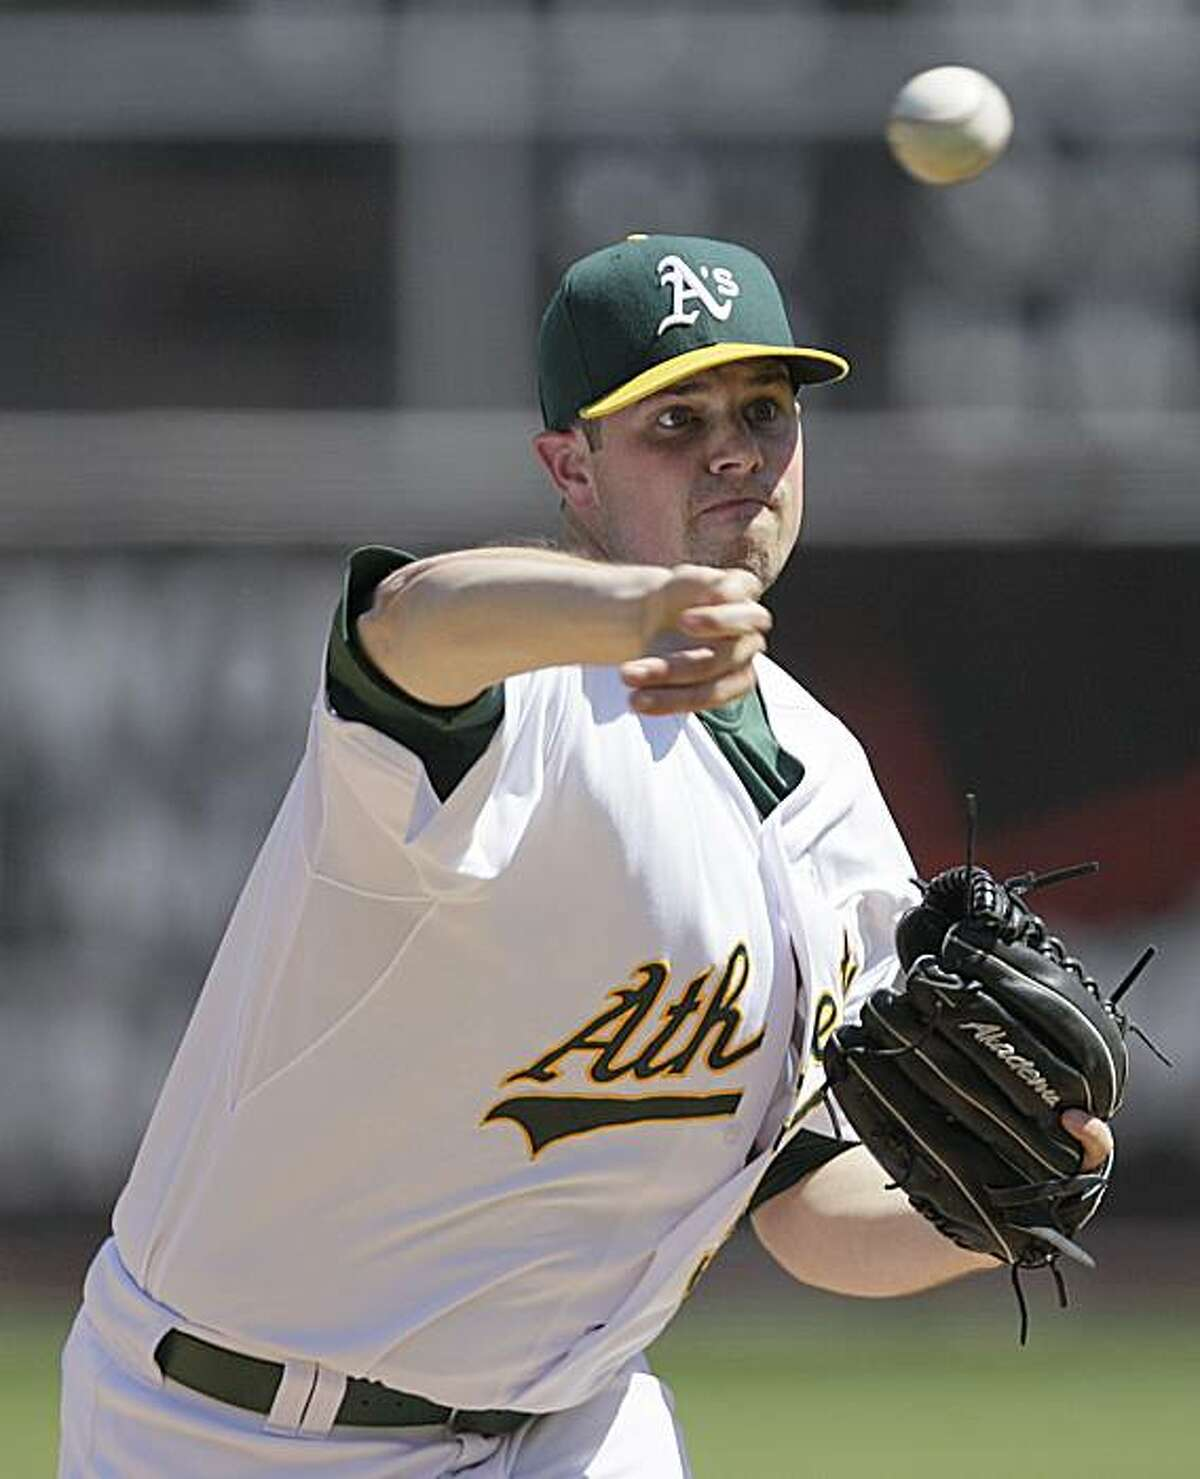 Oakland Athletics' Vin Mazzzaro works against the Los Angeles Angels during the first inning of a baseball game Sunday, Sept. 5, 2010, in Oakland, Calif.